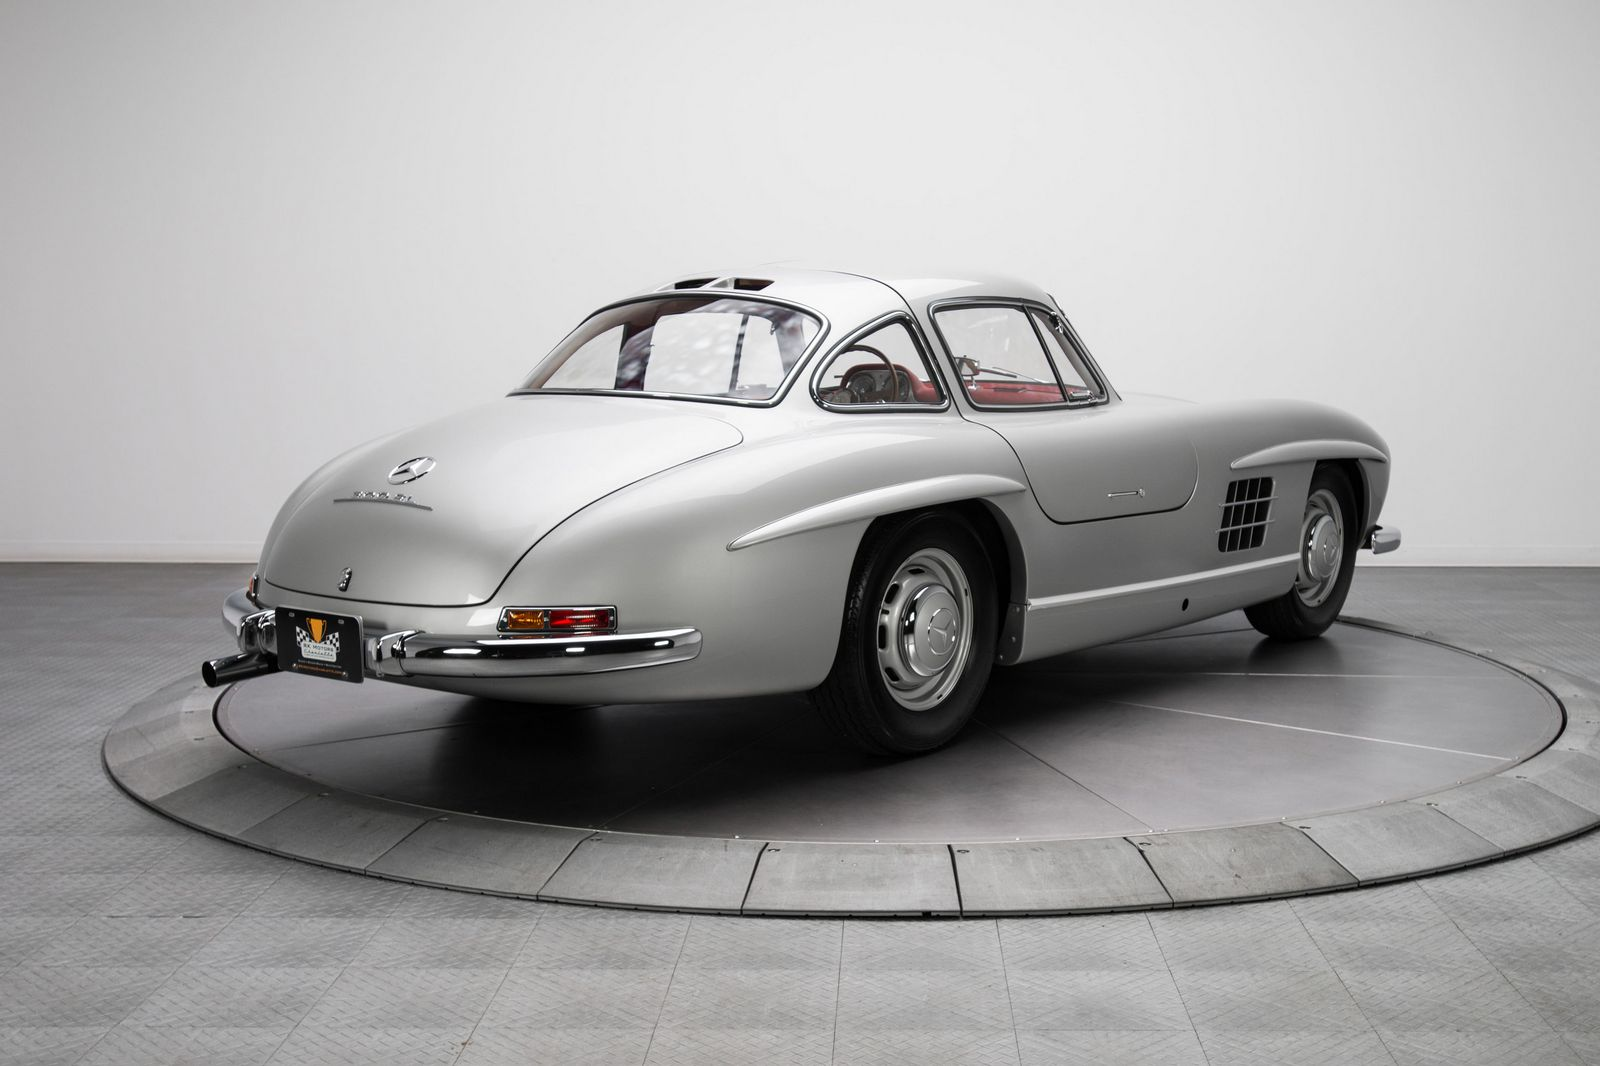 F 150 Models >> Mercedes-Benz 300SL 'Gullwing' Sells For Impressive $1.9